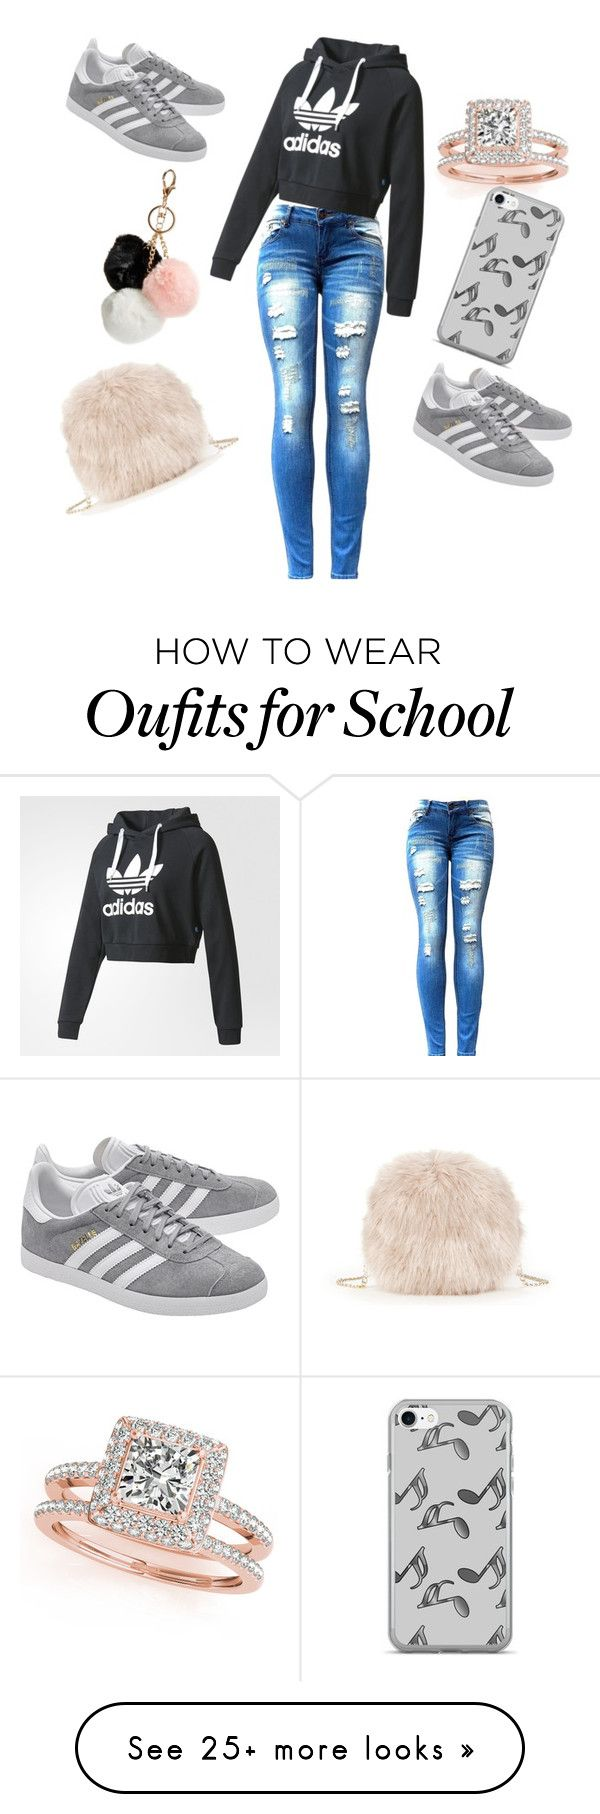 """my daughter slays in middle school.... "" by girlietomboy on Polyvore featuring Sole Society, Allurez, adidas, adidas Originals, Music Notes and GUESS"